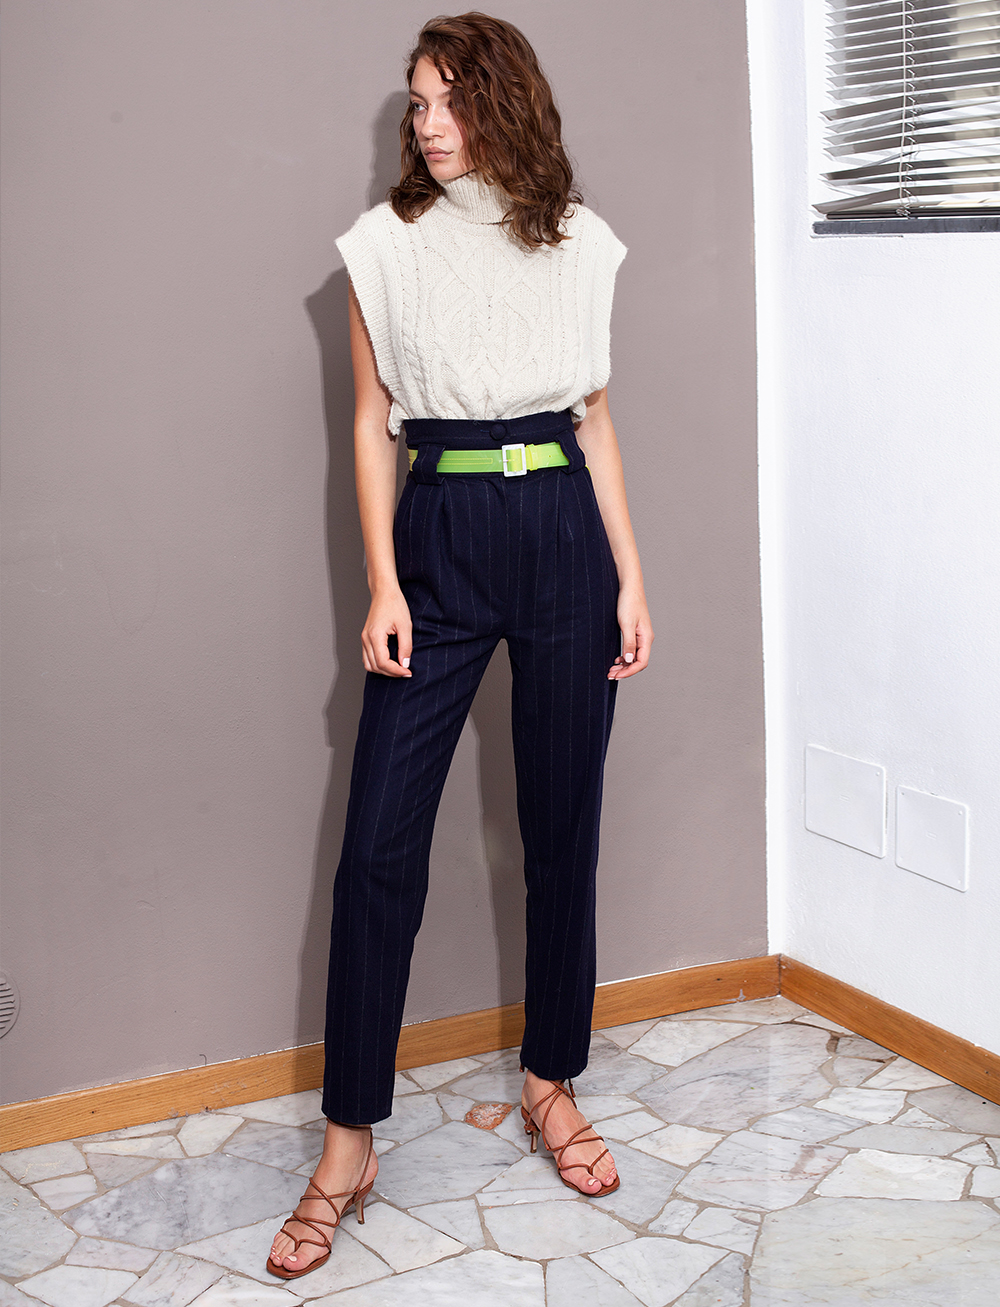 Camps 20' Trousers by Manurí on curated-crowd.com